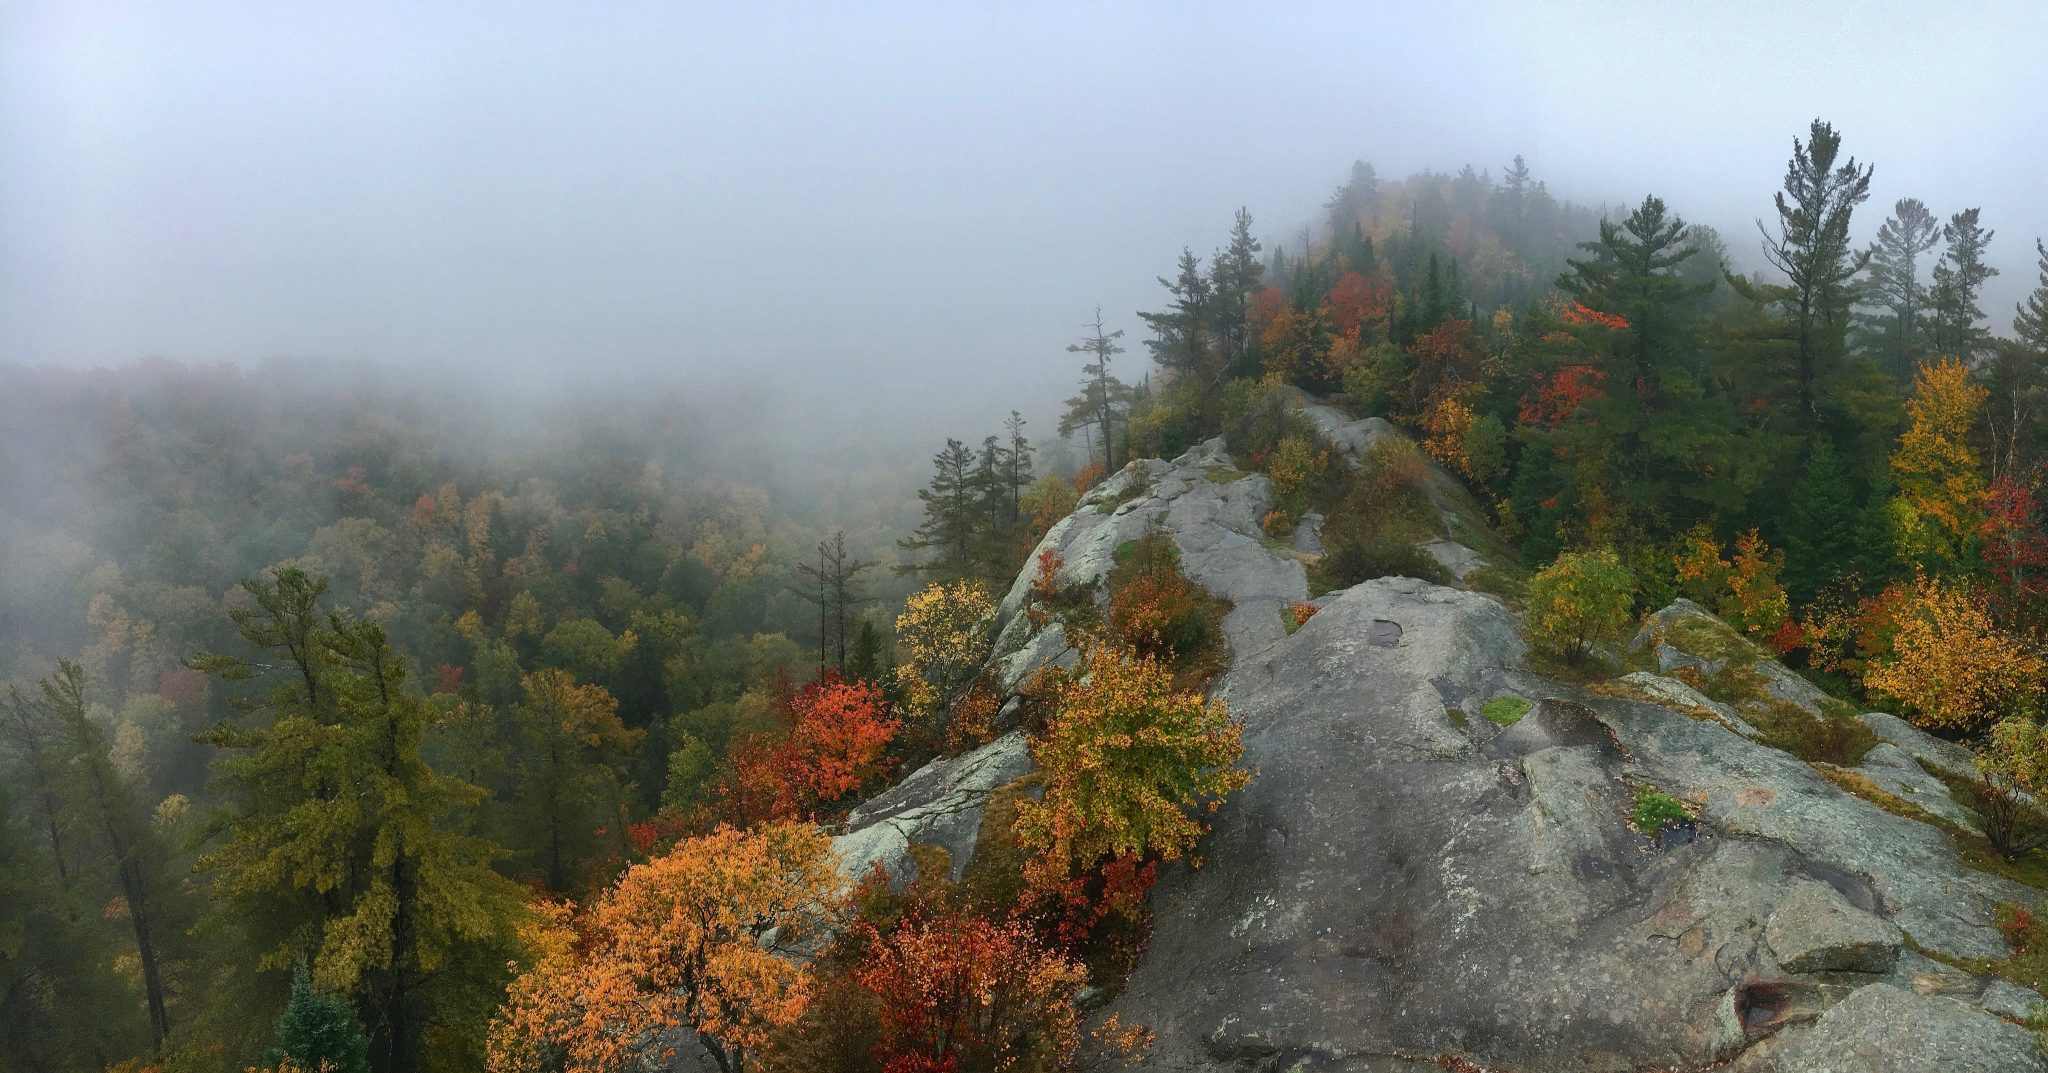 Winner in the Scenic Nature category of the Albany ADK Chapter's Annual Photo Contest, 2019. Photo by Jemma Rowlands.